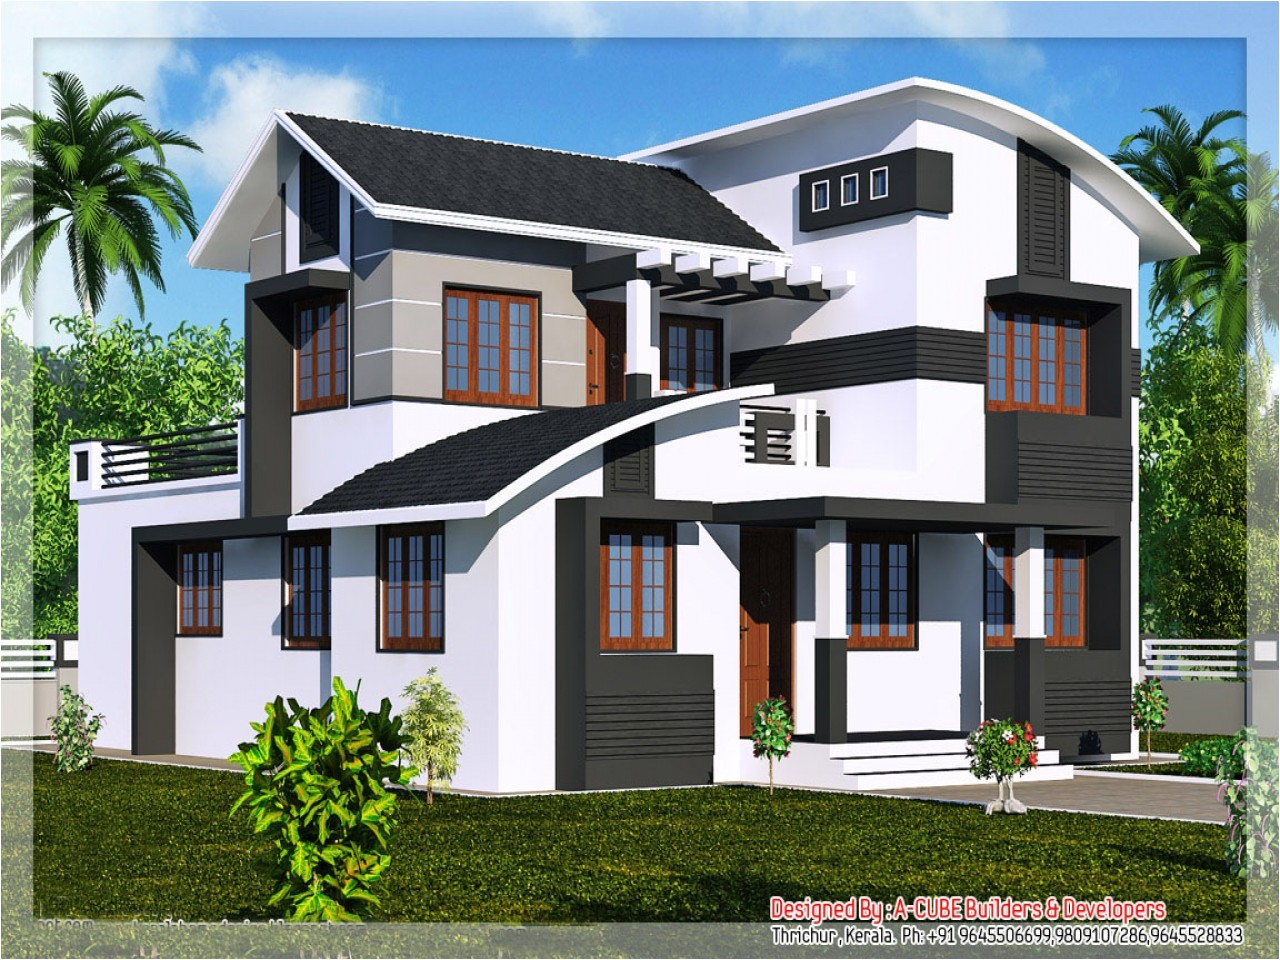 37aca81f092caf83 india duplex house design duplex house plans and designs in usa